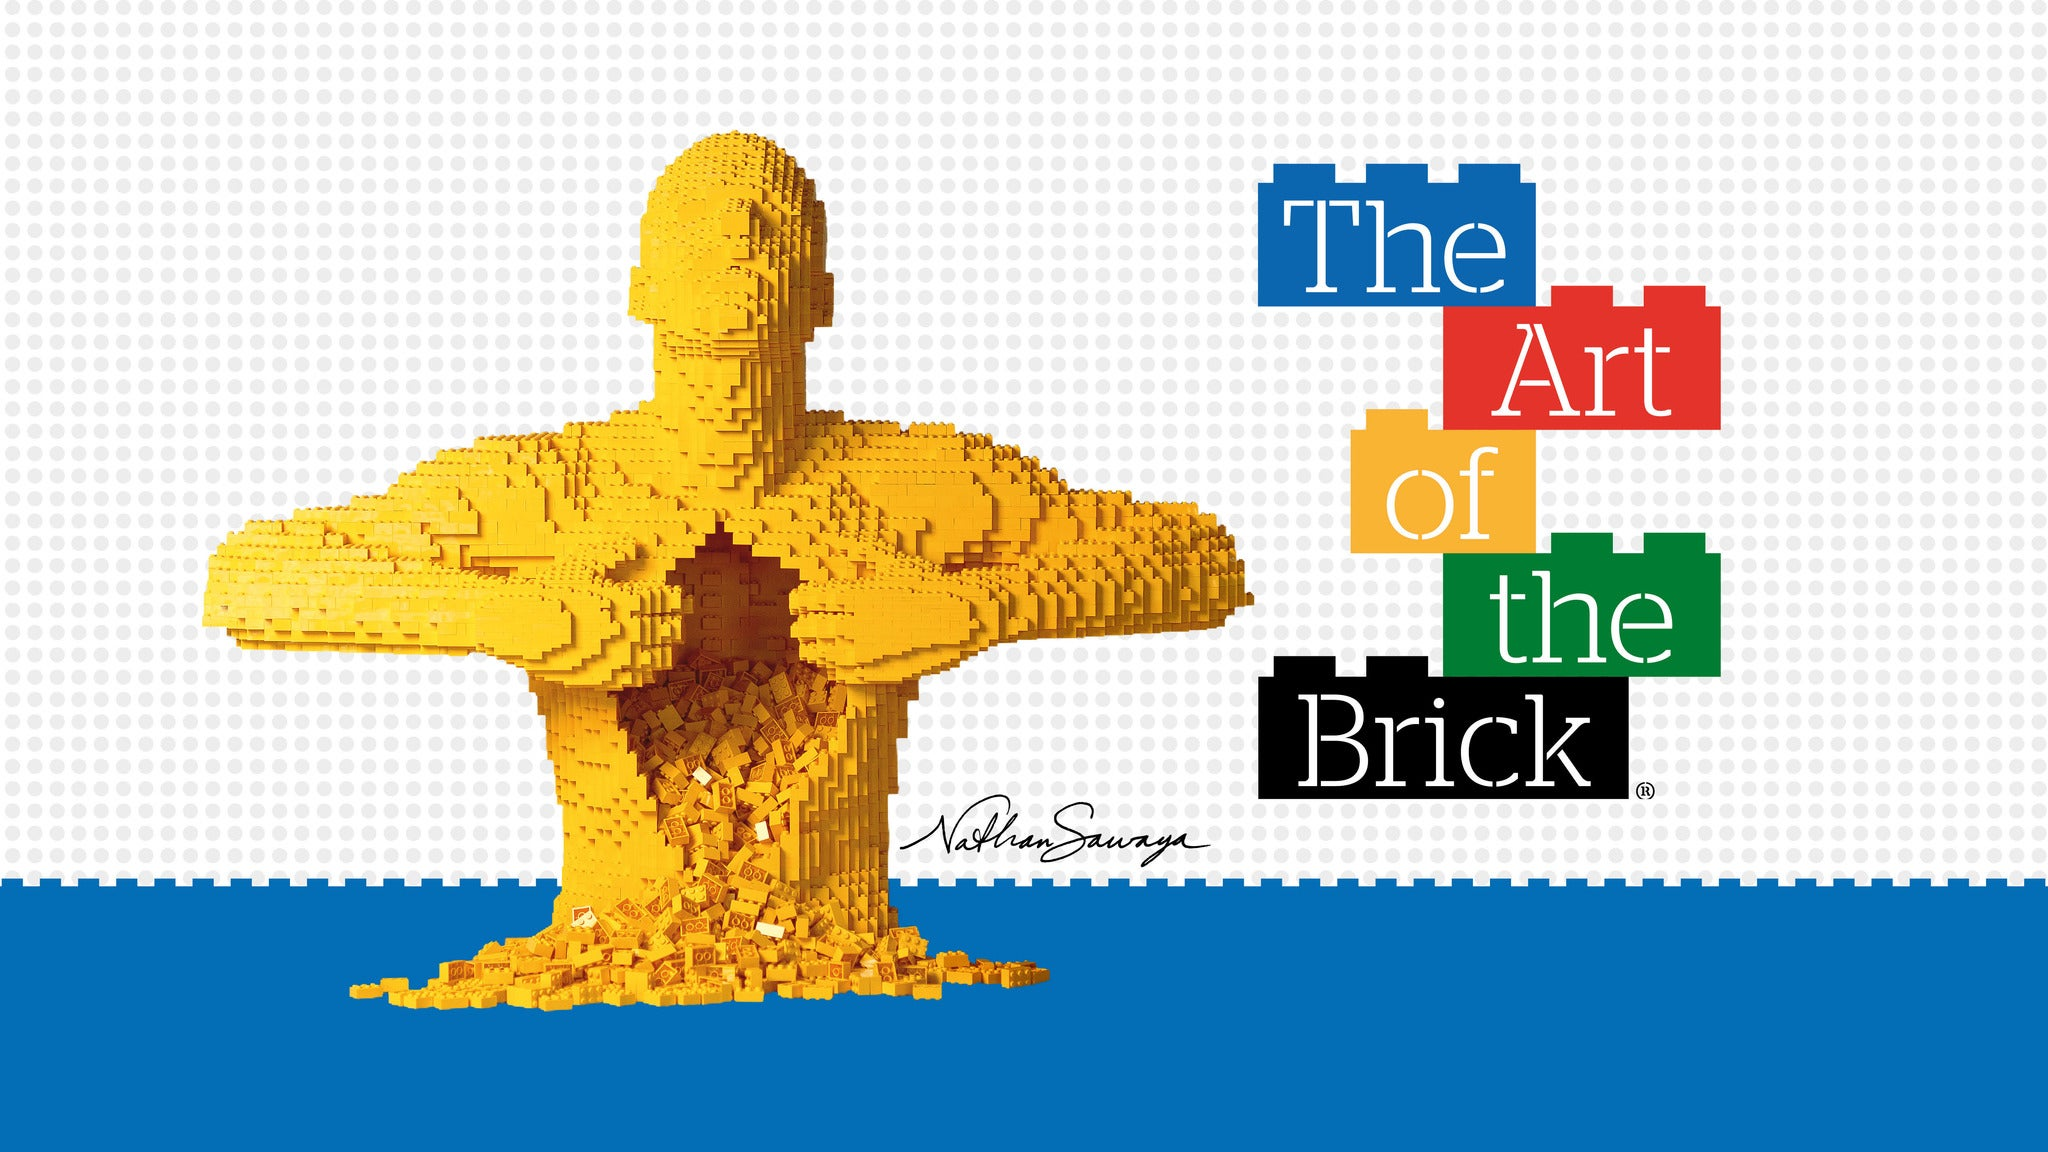 Art of the Brick - the Exhibition